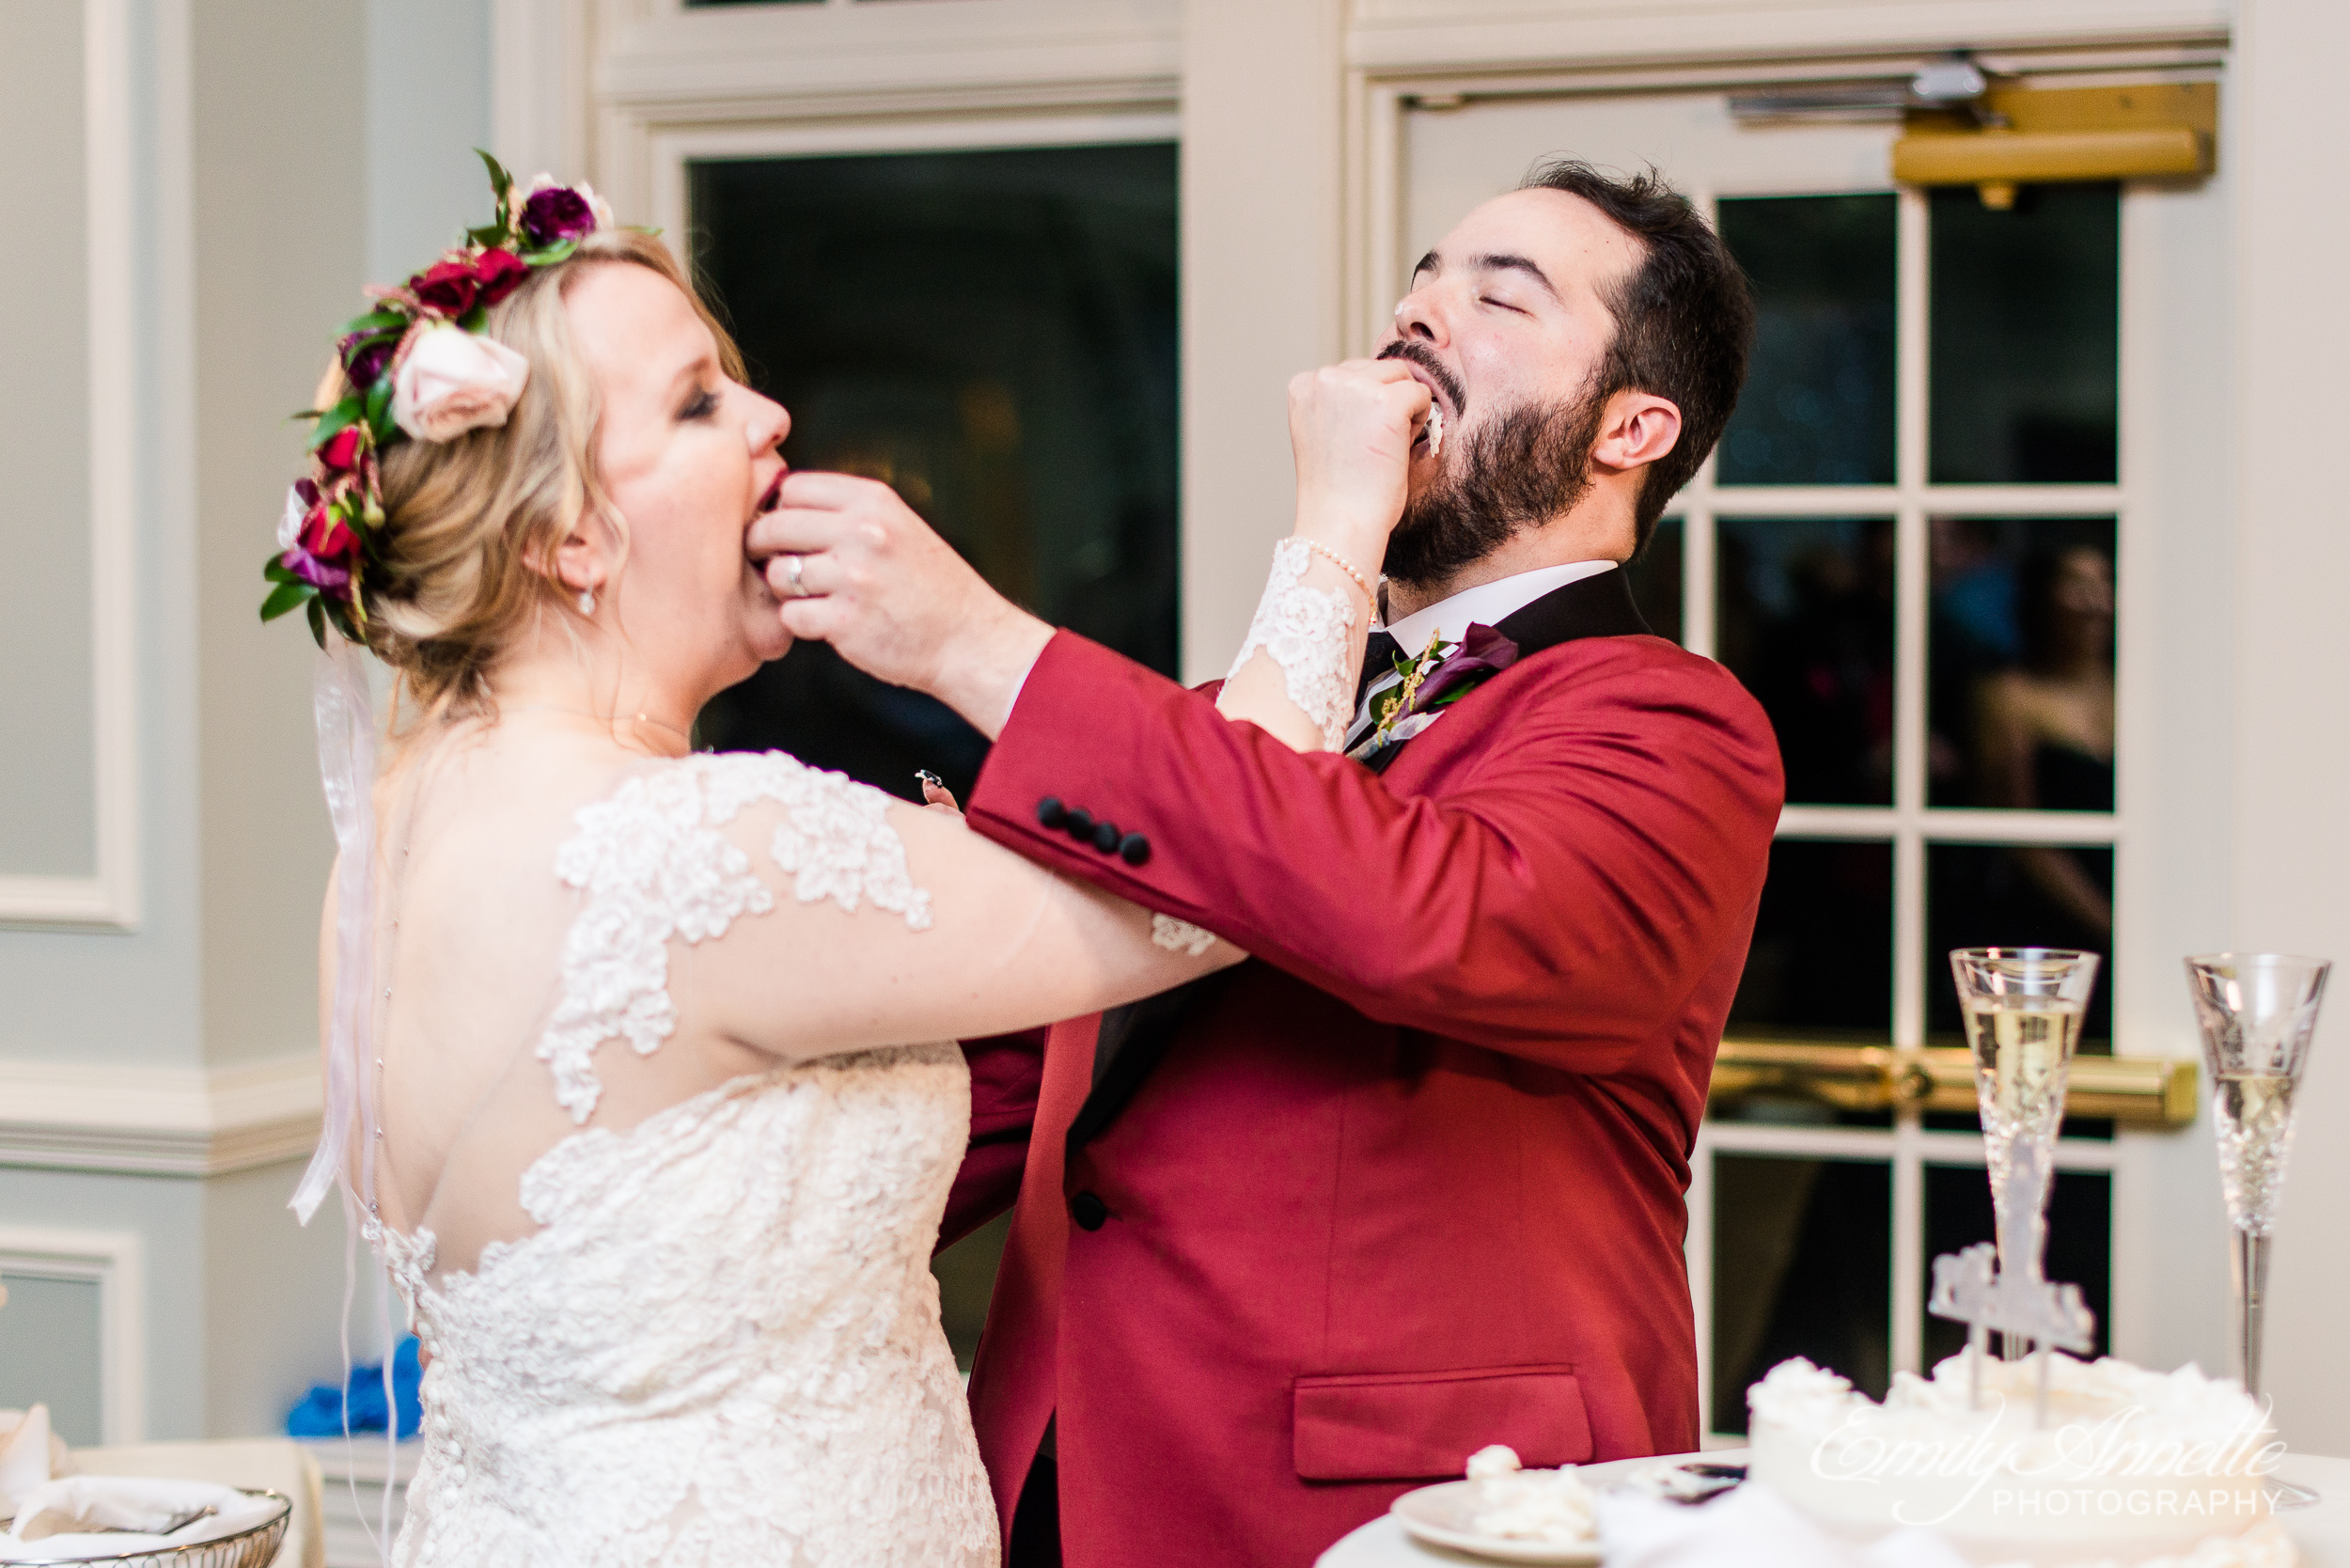 A bride and groom feed each other cake by hand during a wedding reception at Willow Oaks Country Club in Richmond, Virginia